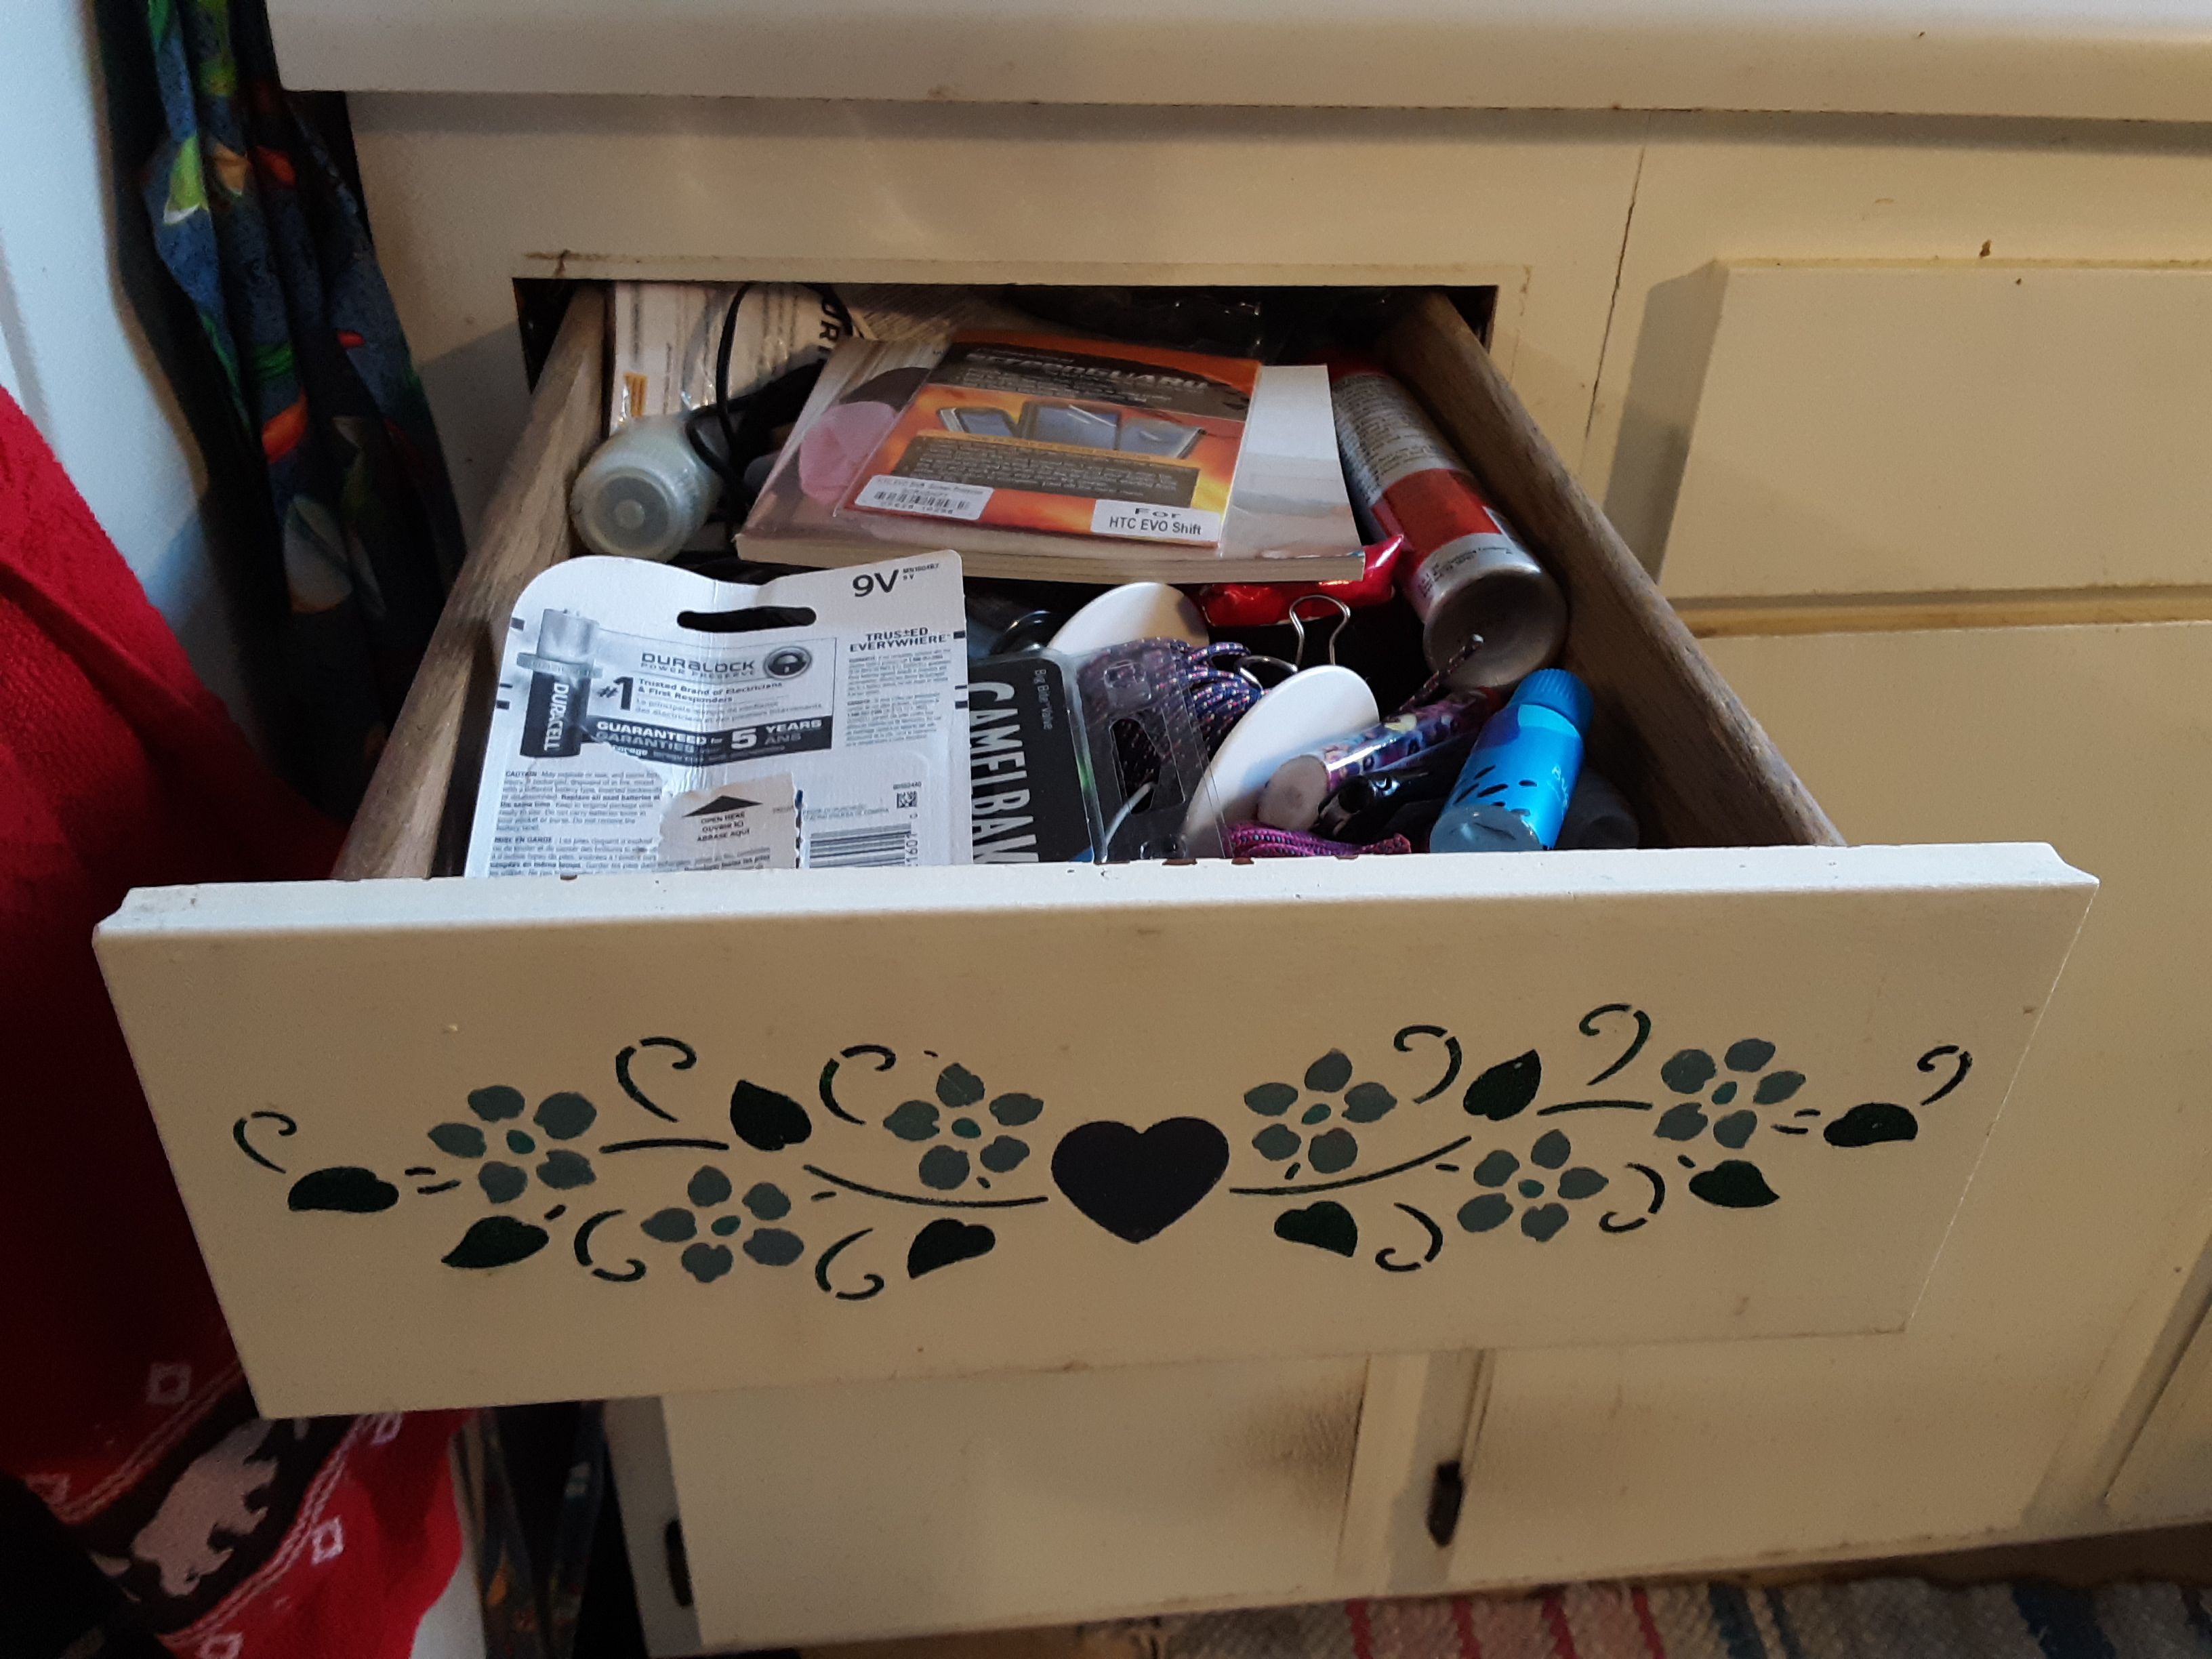 The very full junk drawer before organizing